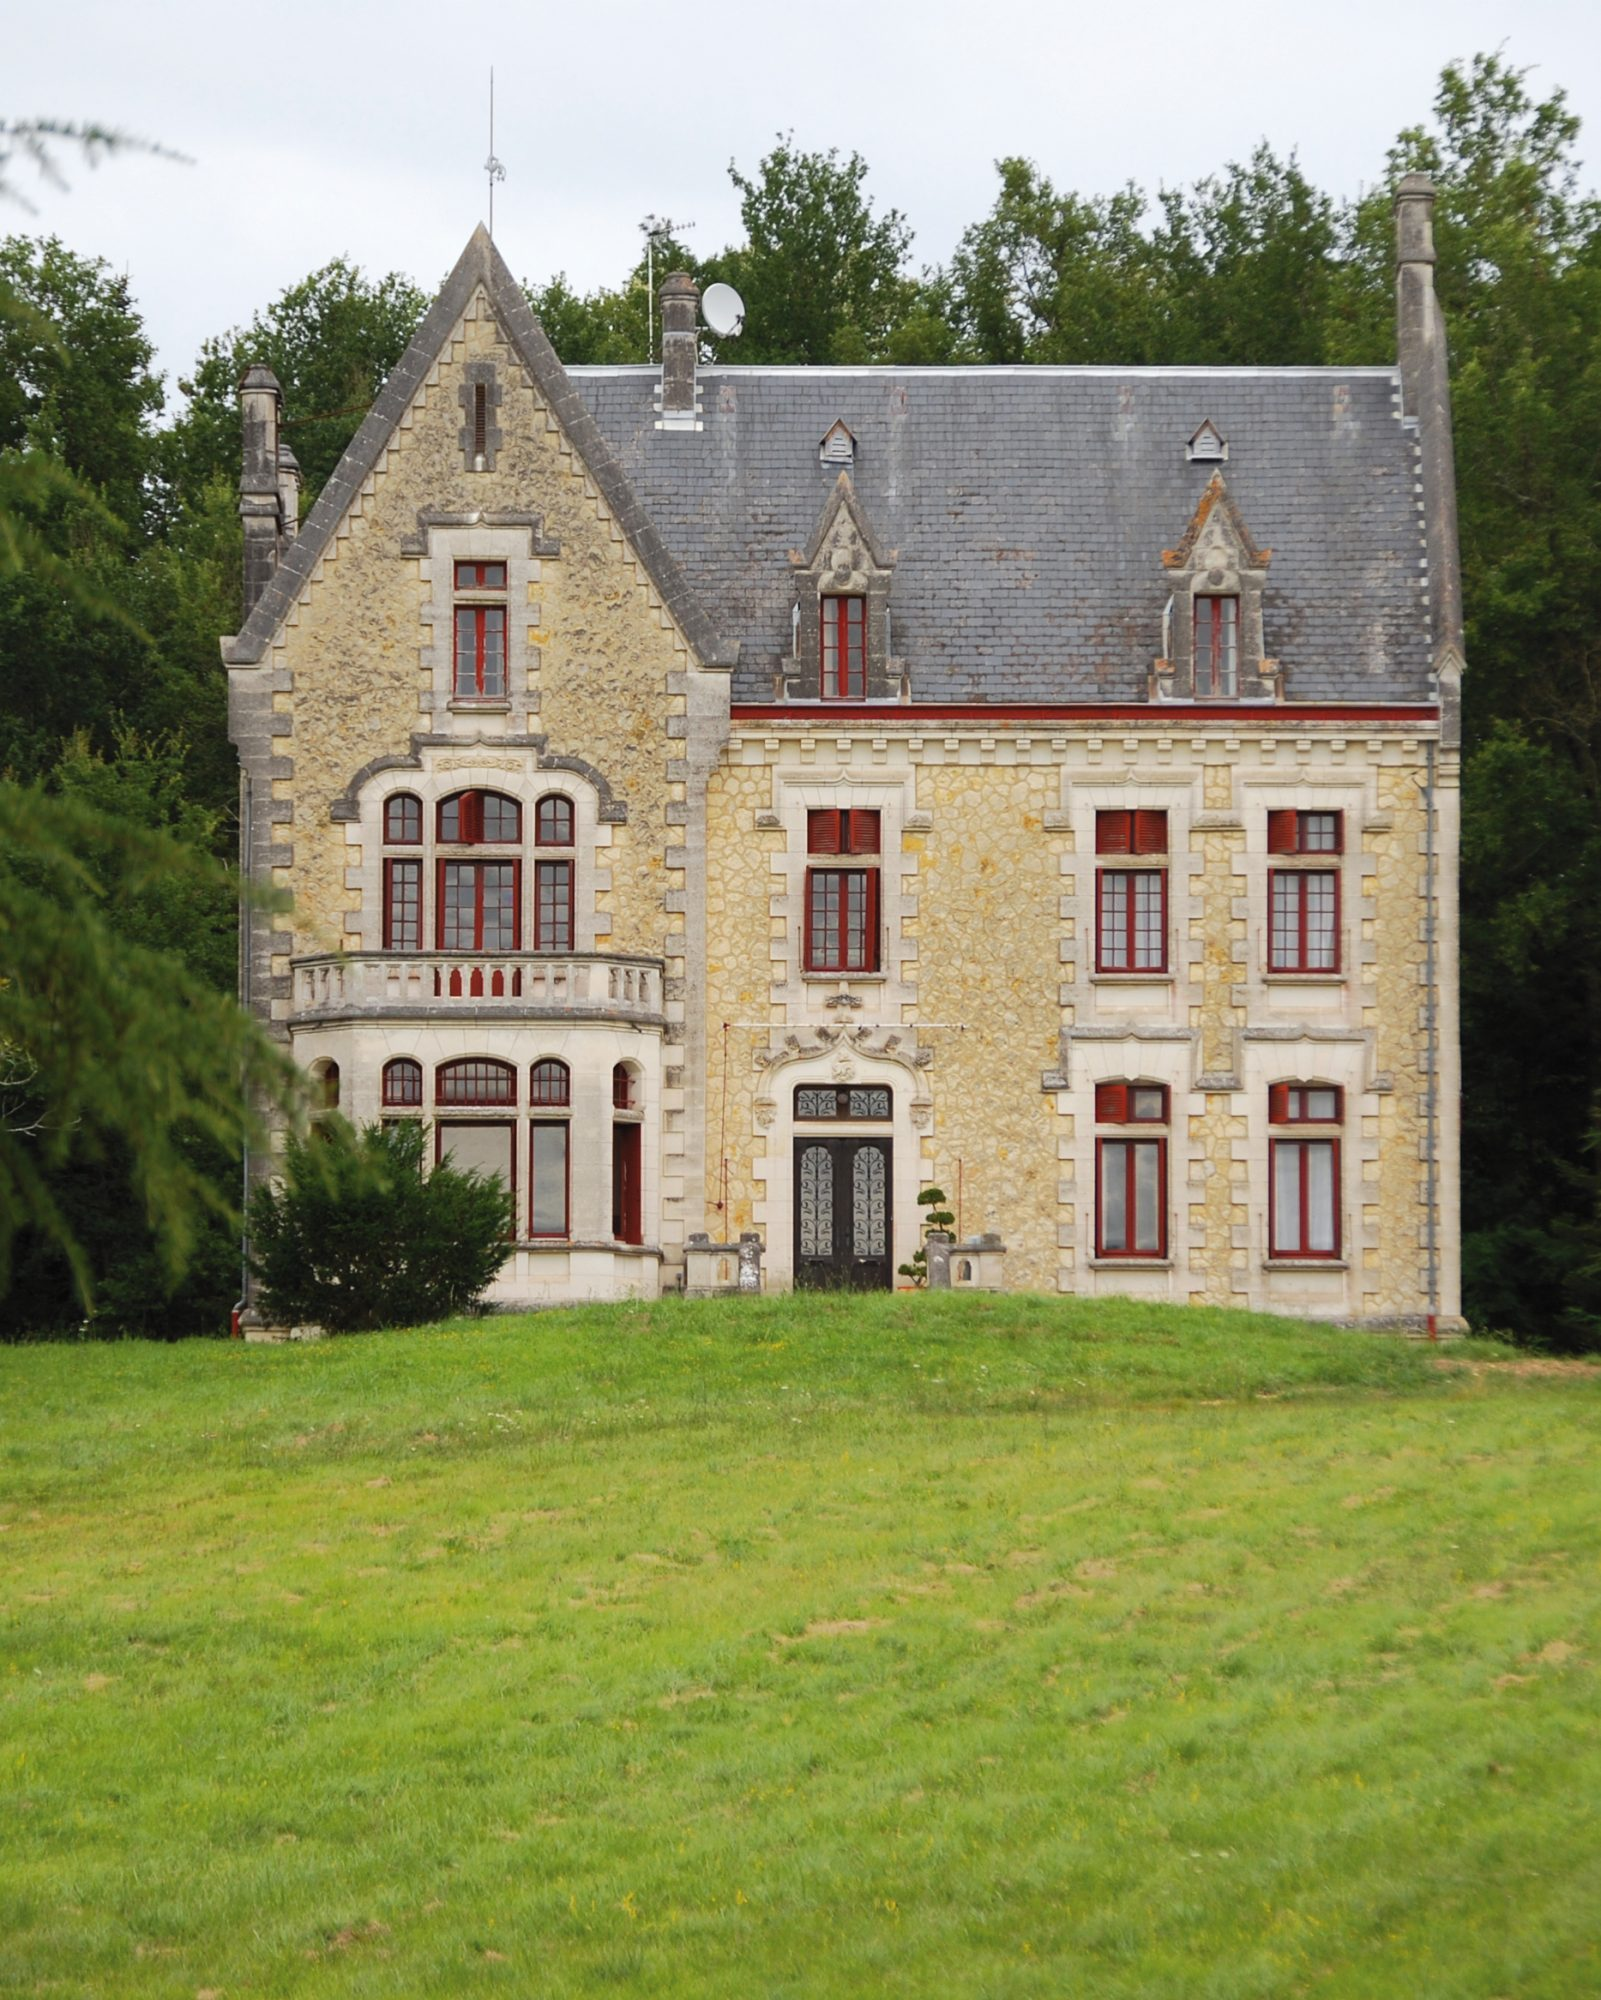 mr-mrs-smith-travel-hotels-wd0413-chateau-la-thuiliere-exterior.jpg